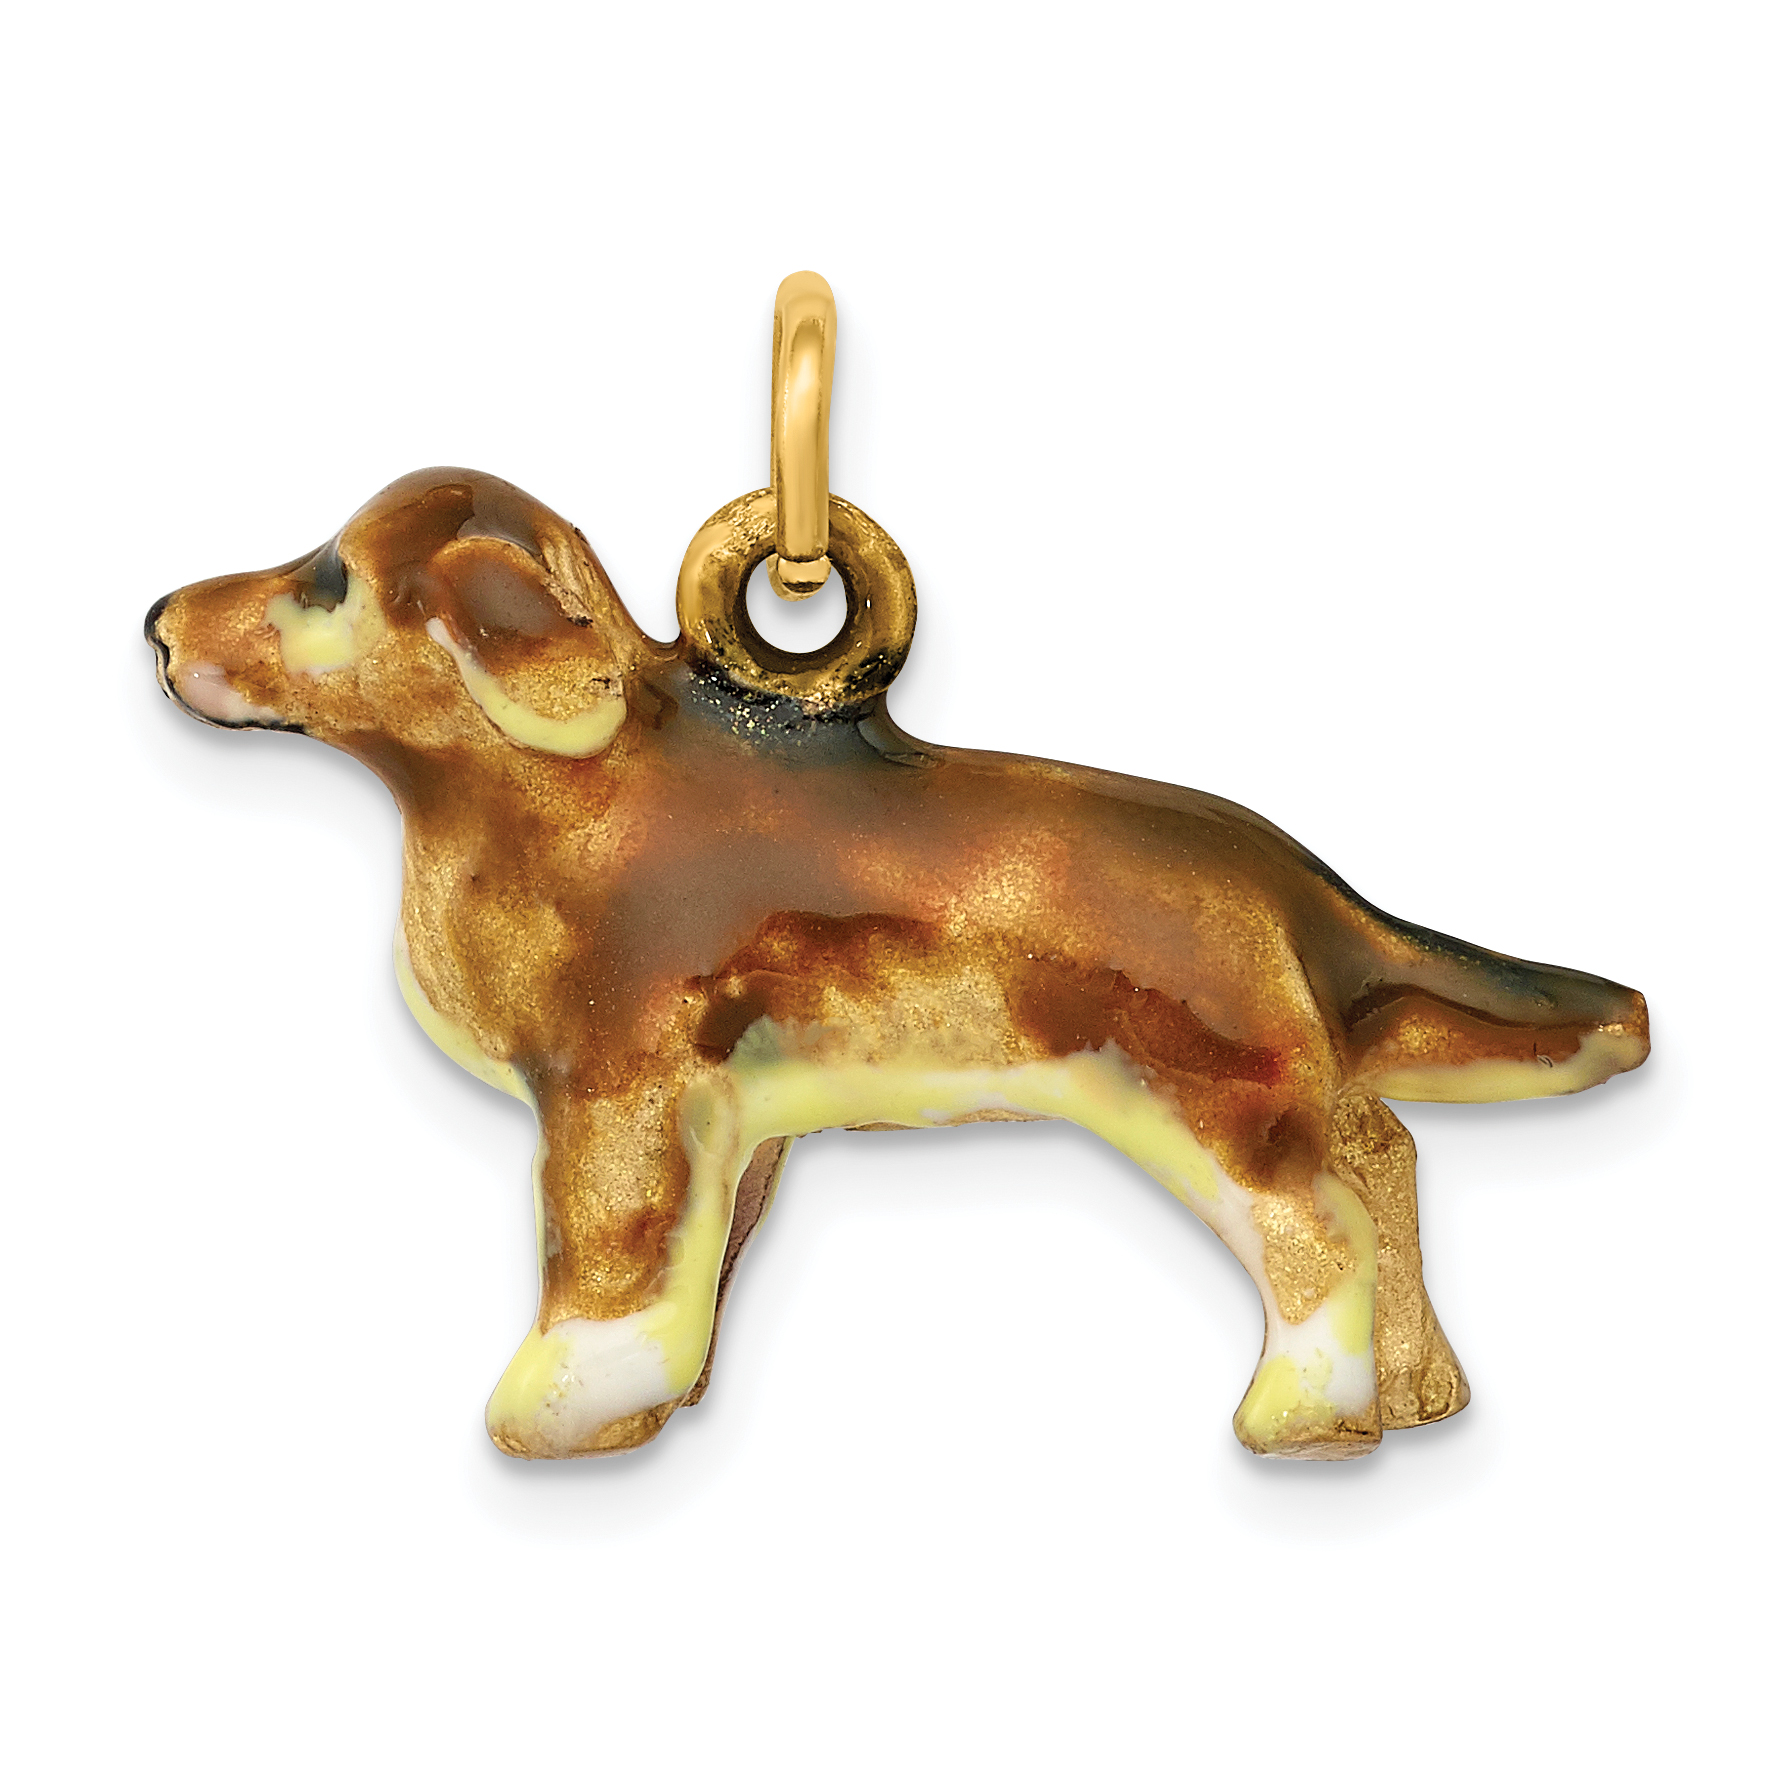 14K Enameled Small Golden Retriever Dog Charm